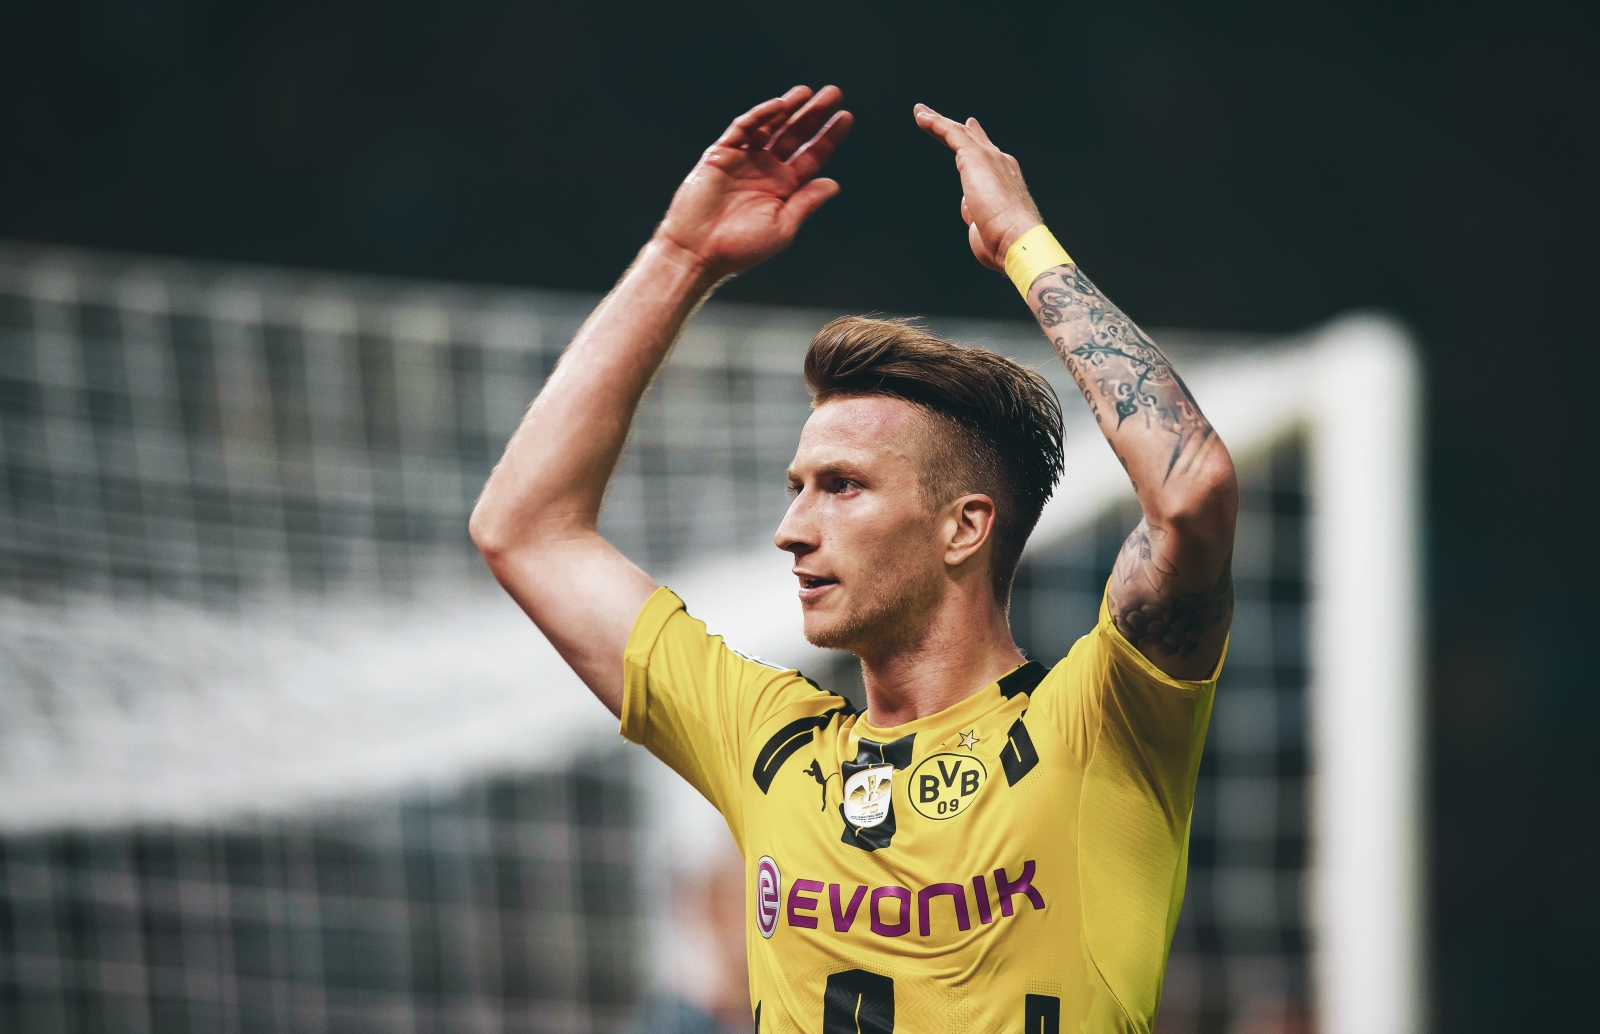 Marco Reus and the inescapable void of his career